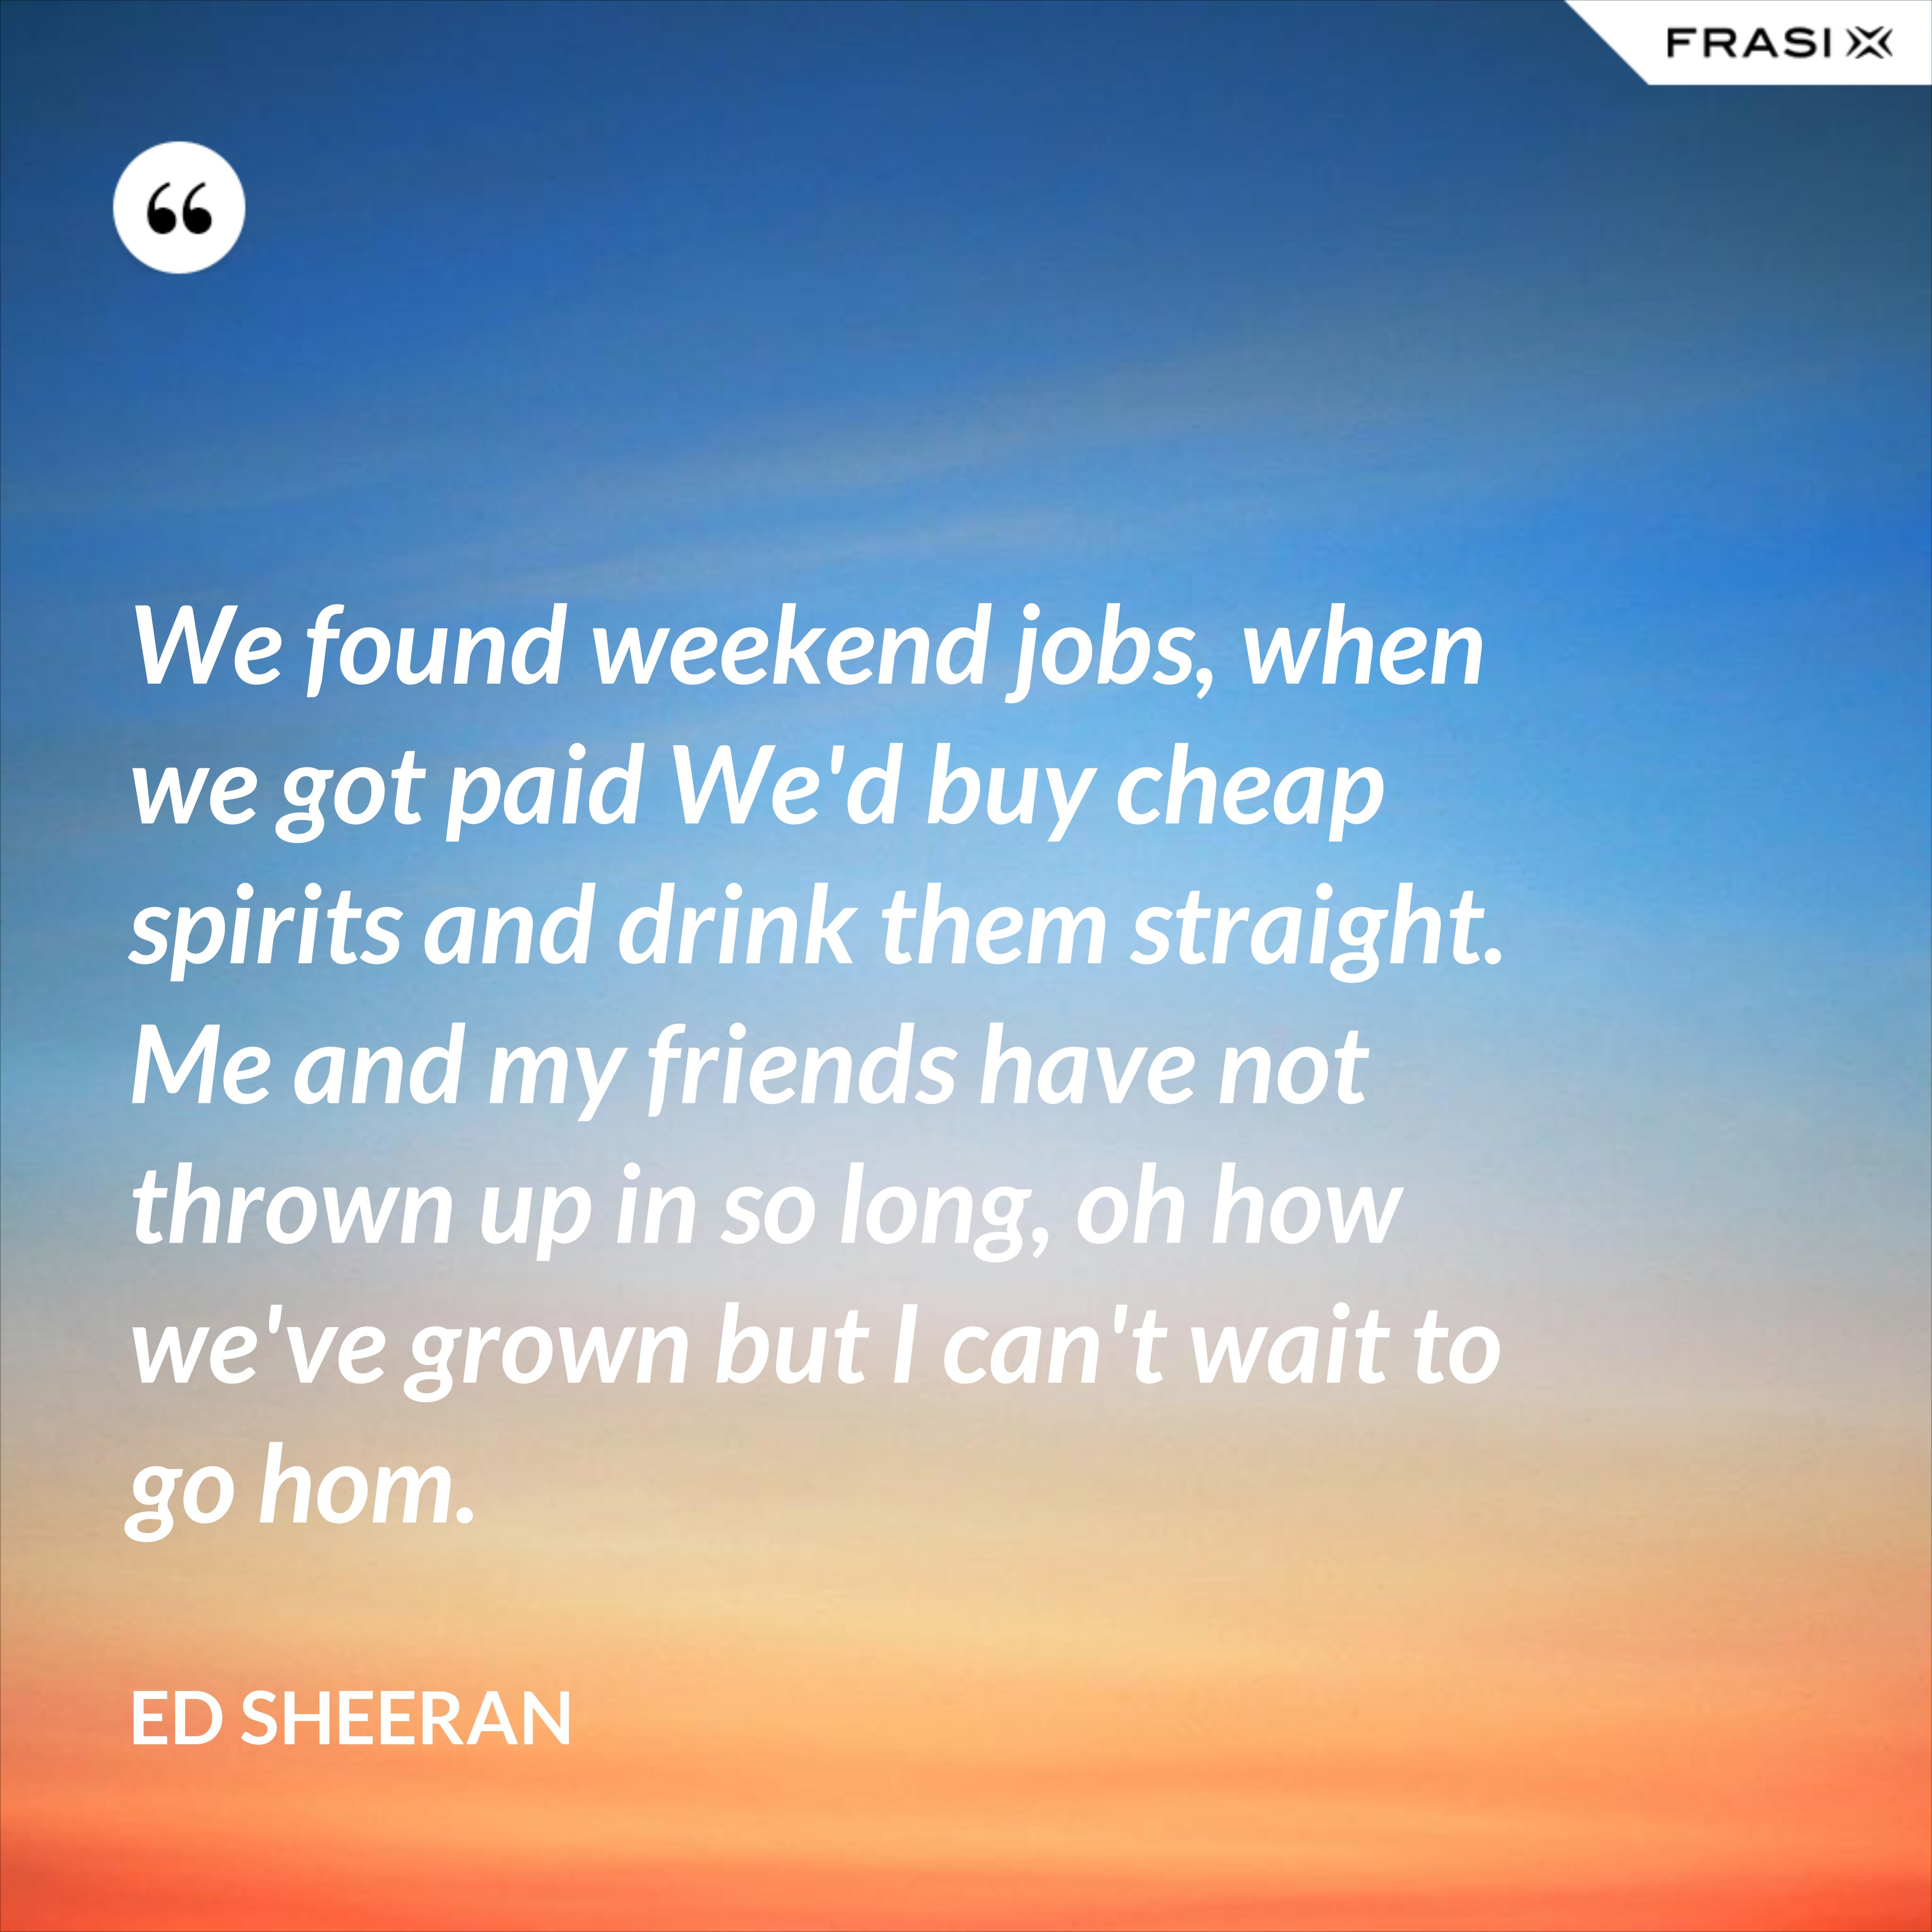 We found weekend jobs, when we got paid We'd buy cheap spirits and drink them straight. Me and my friends have not thrown up in so long, oh how we've grown but I can't wait to go hom. - Ed Sheeran